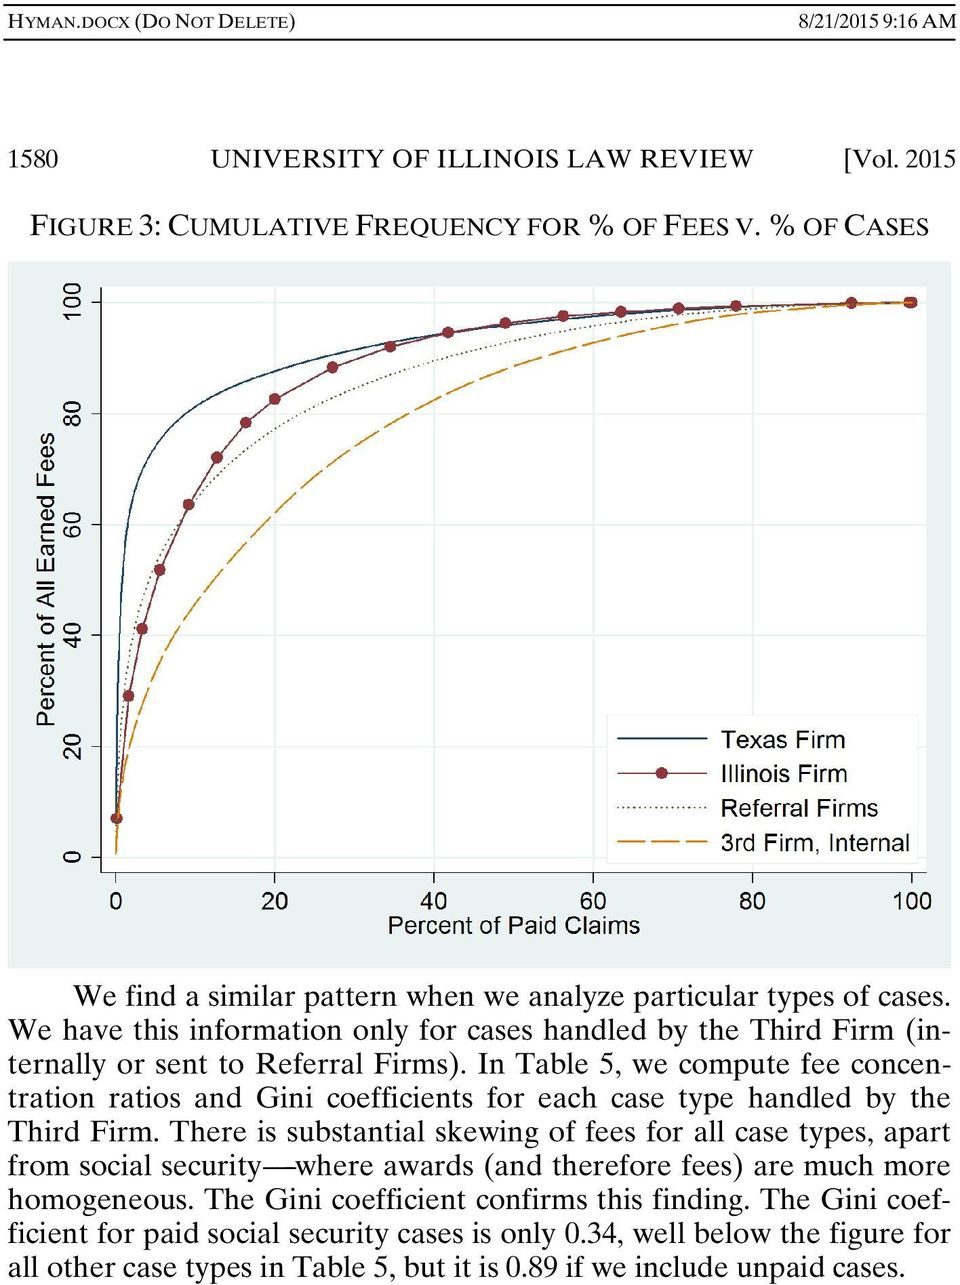 In Table 5, we compute fee concentration ratios and Gini coefficients for each case type handled by the Third Firm.